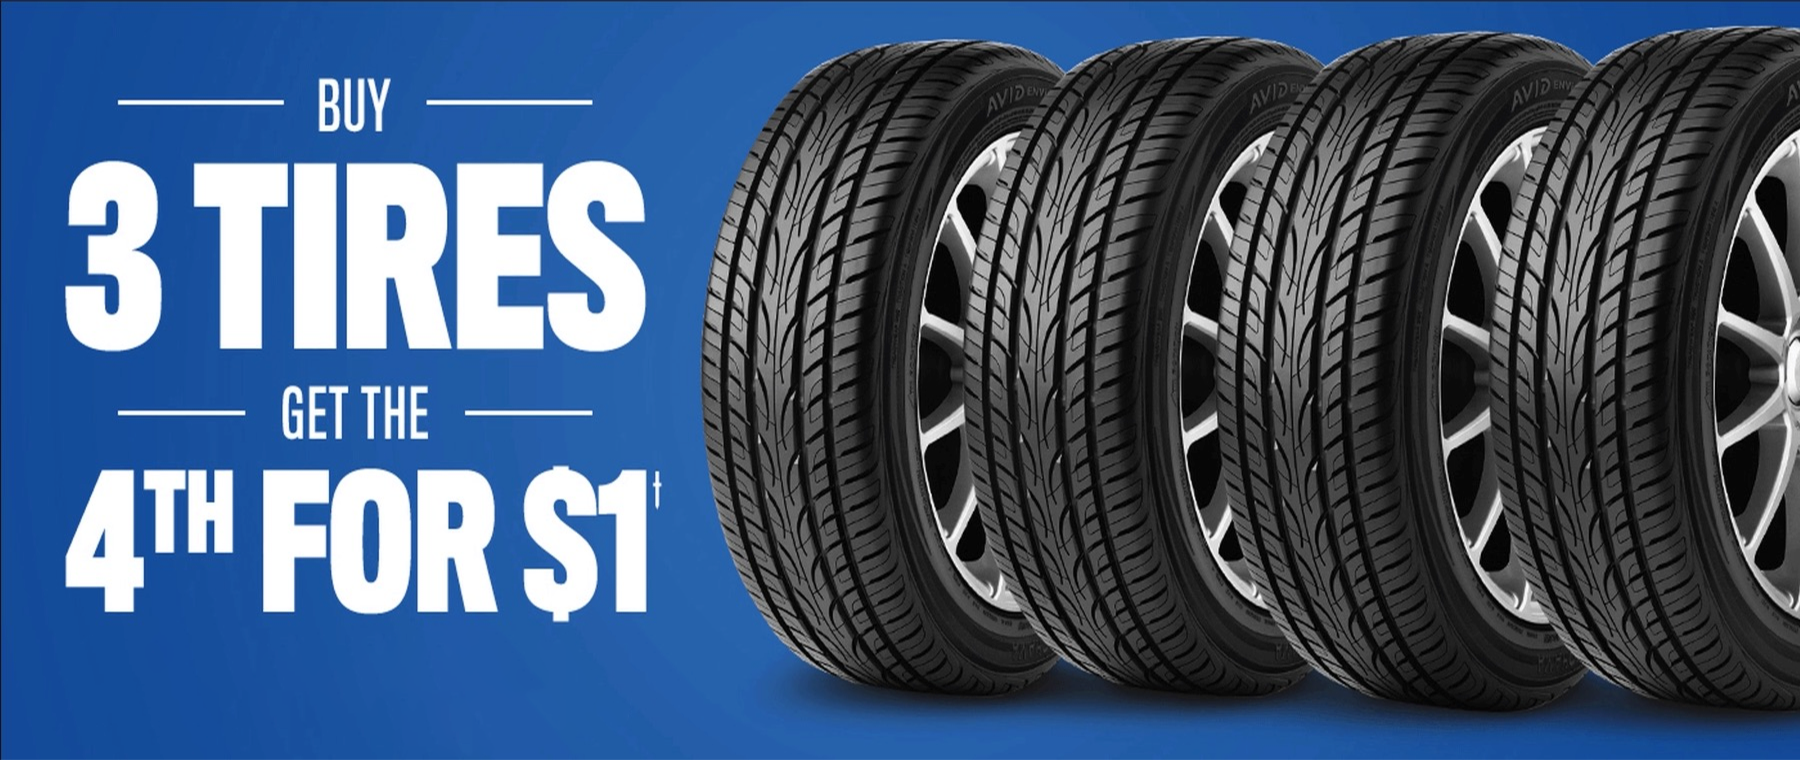 Buy 3 Tires Get 4th For $1.00